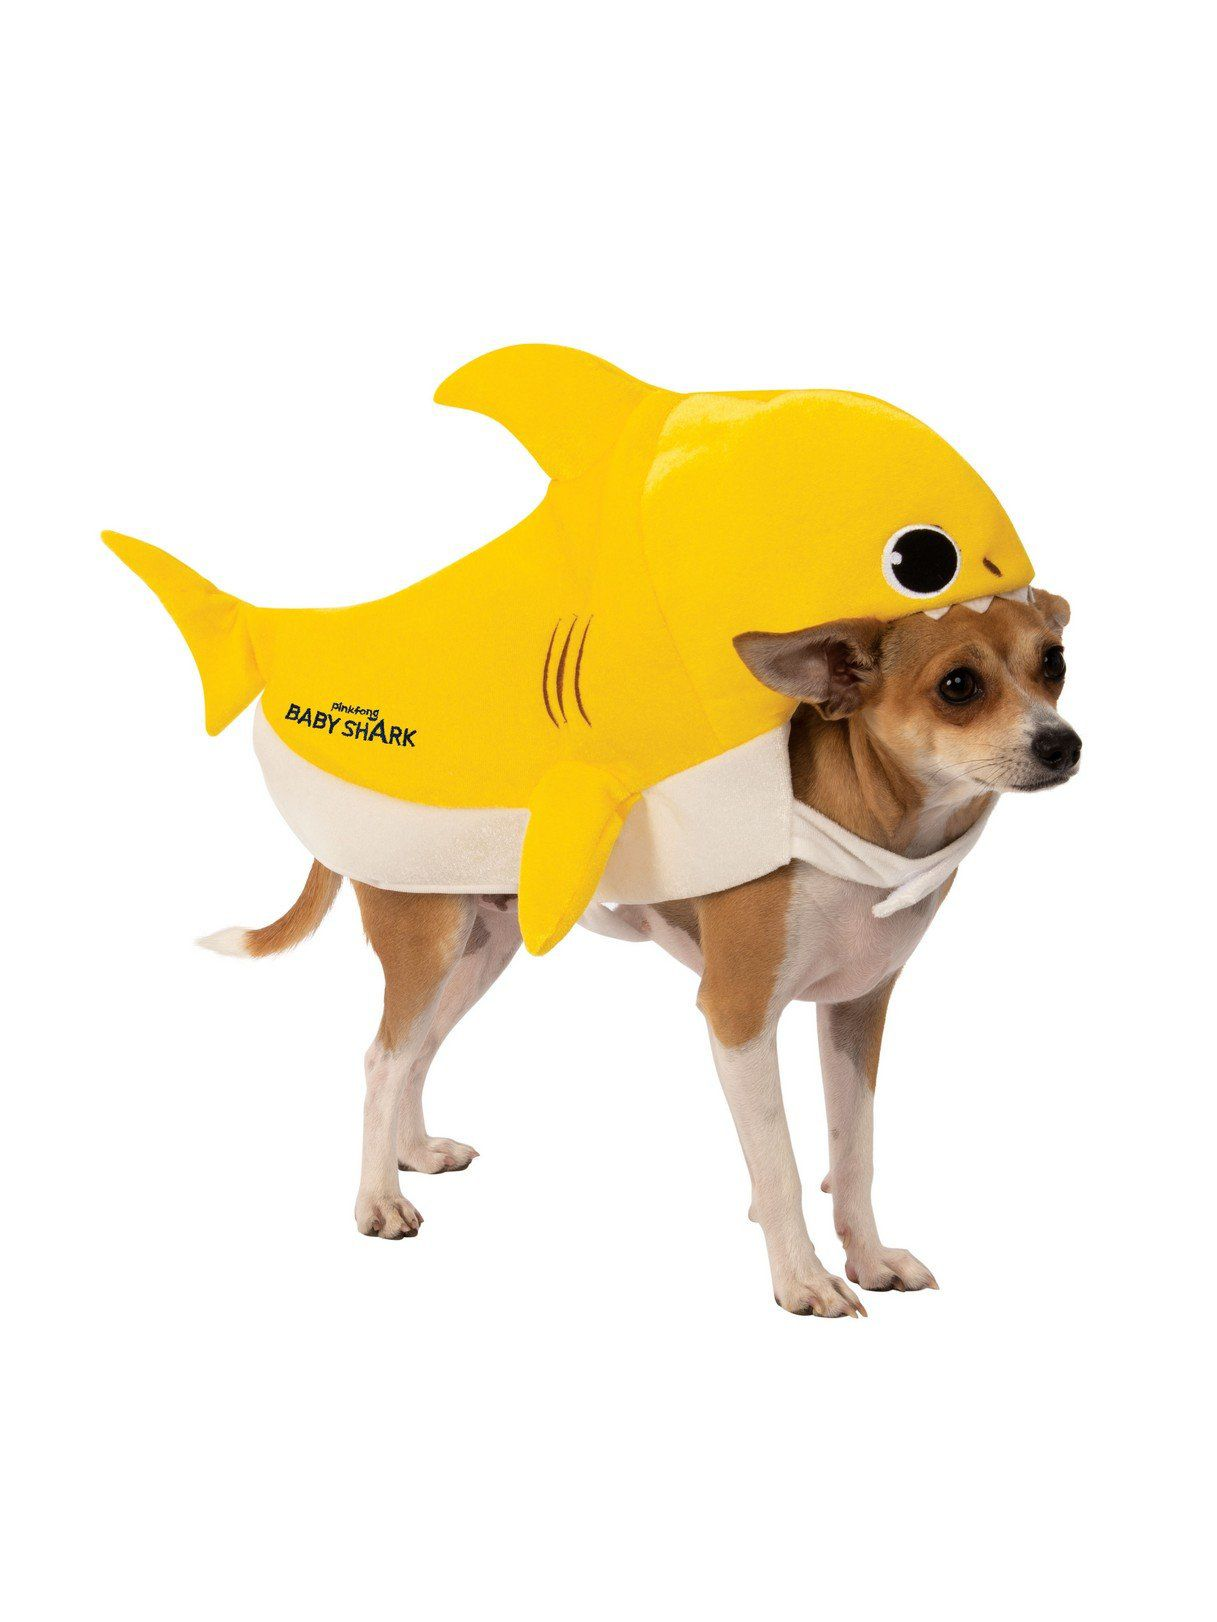 Despicable Me Pet Costume Dog Funny Minion Outfit Clothing Yellow Halloween Gru